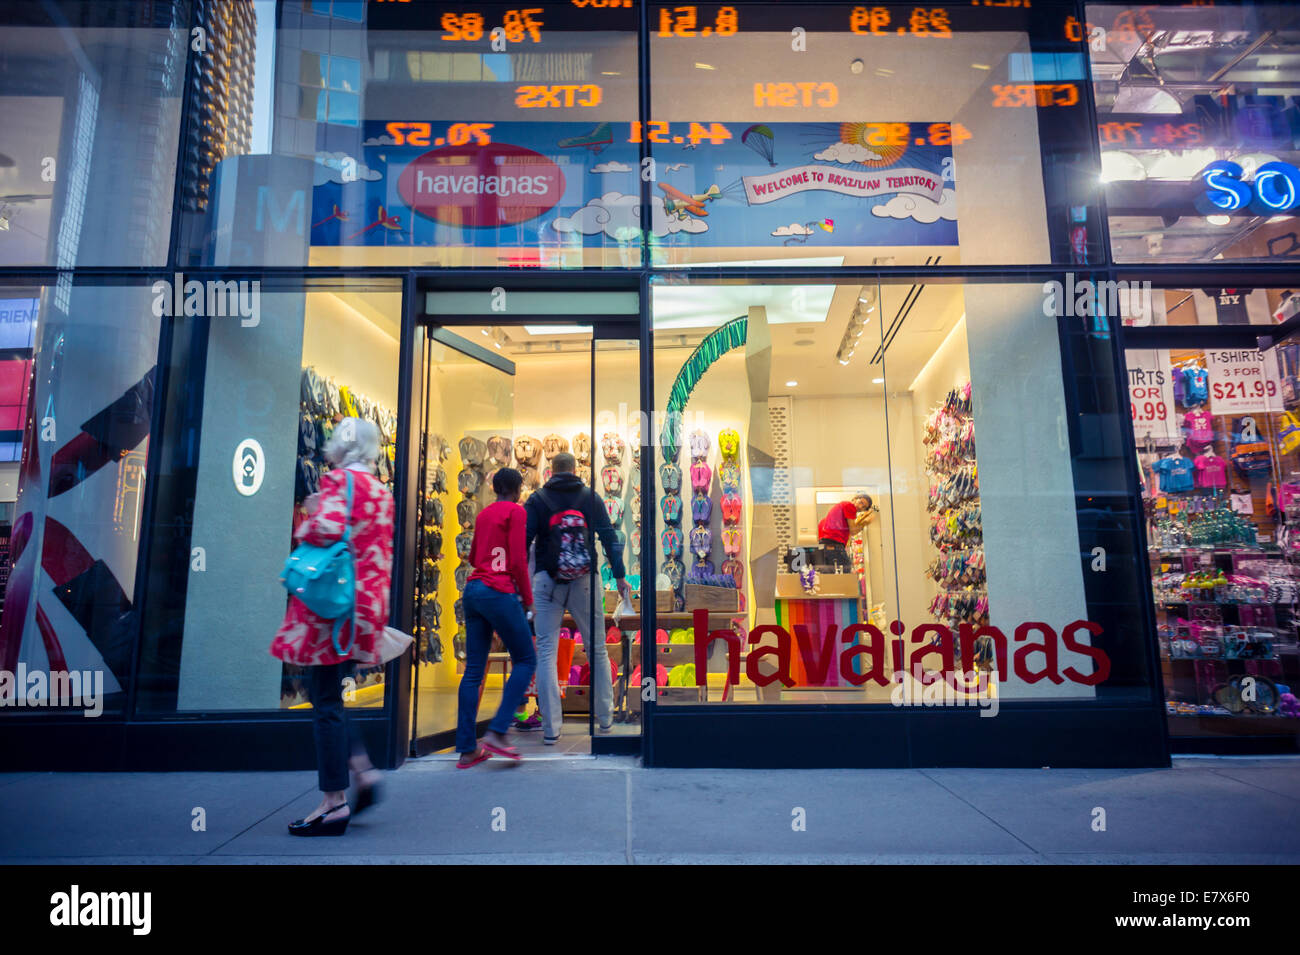 ecca731a2 Tourists pass the newly opened Havaianas store in Times Square in New York  - Stock Image